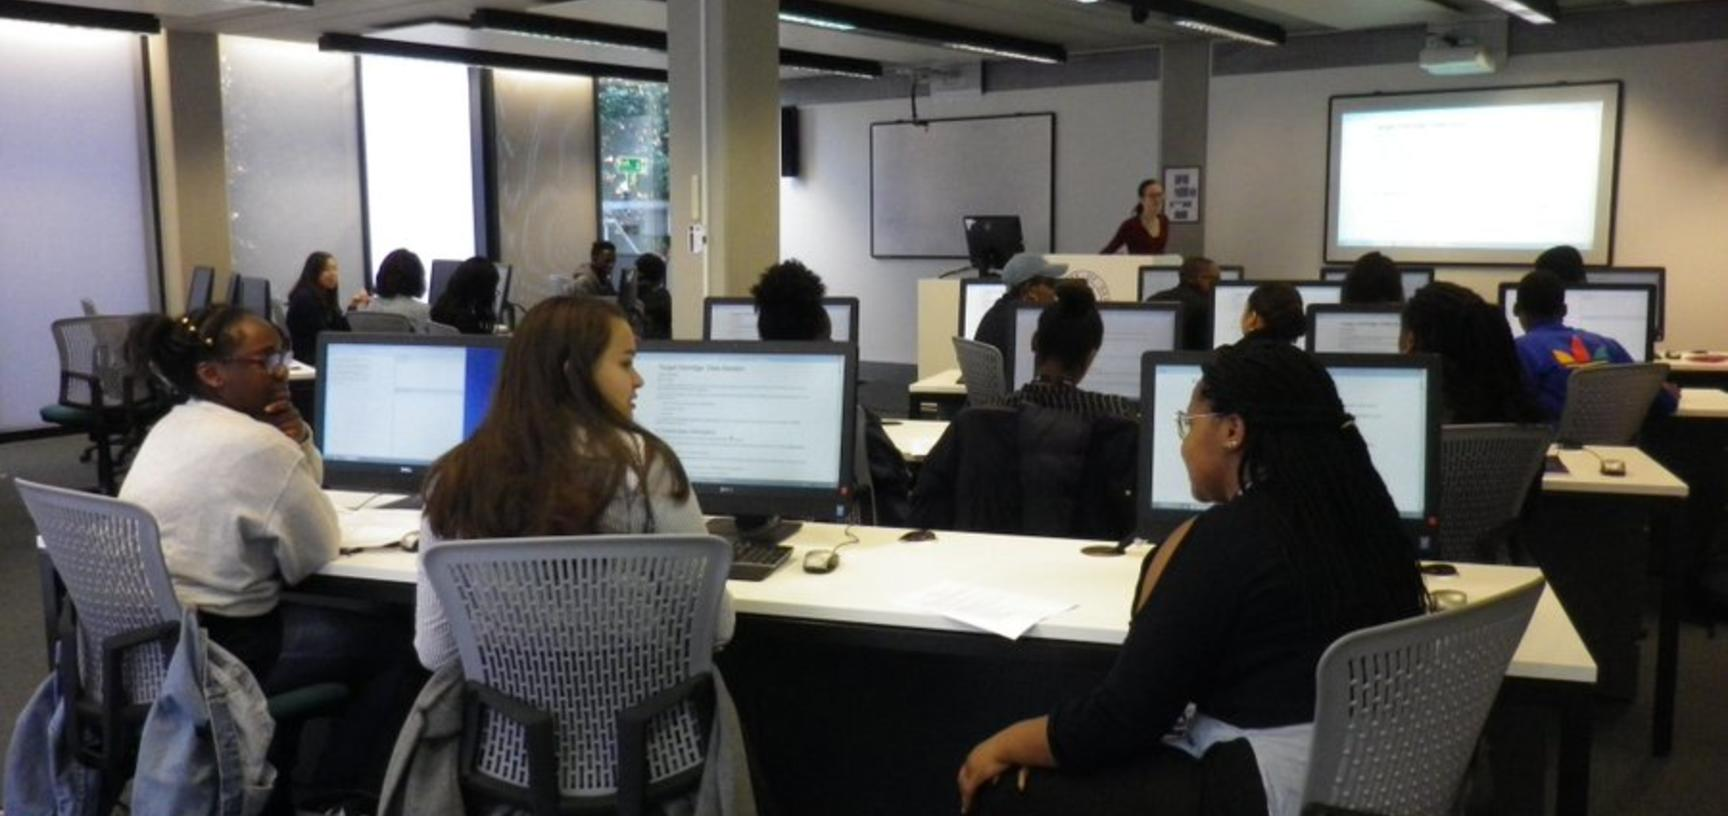 View from the back of computer lab with students in front of desktops and lecturer at the front next to projector screen